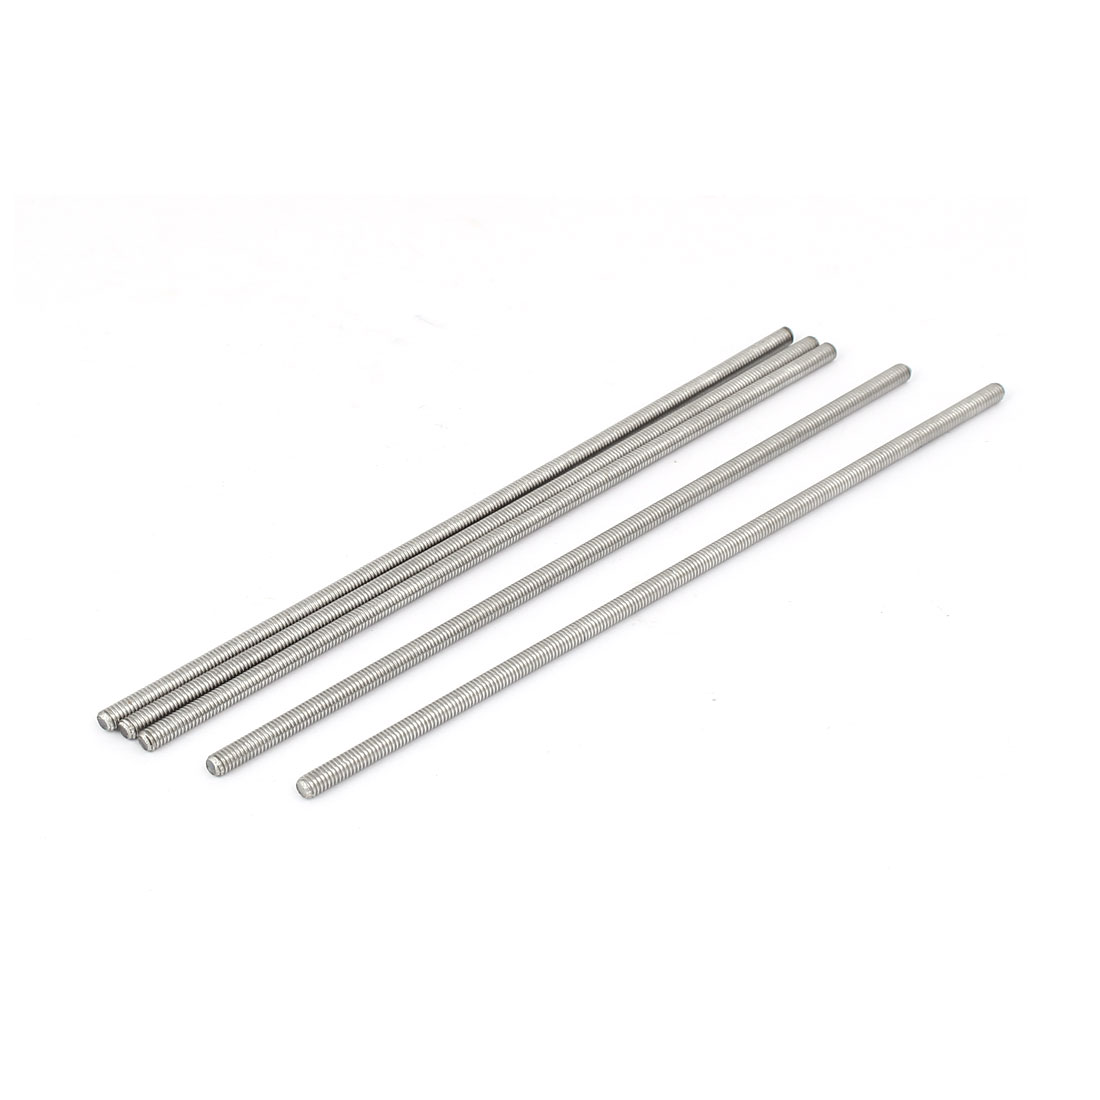 M4 x 160mm 0.7mm Pitch 304 Stainless Steel Fully Threaded Rod Bars 5 Pcs